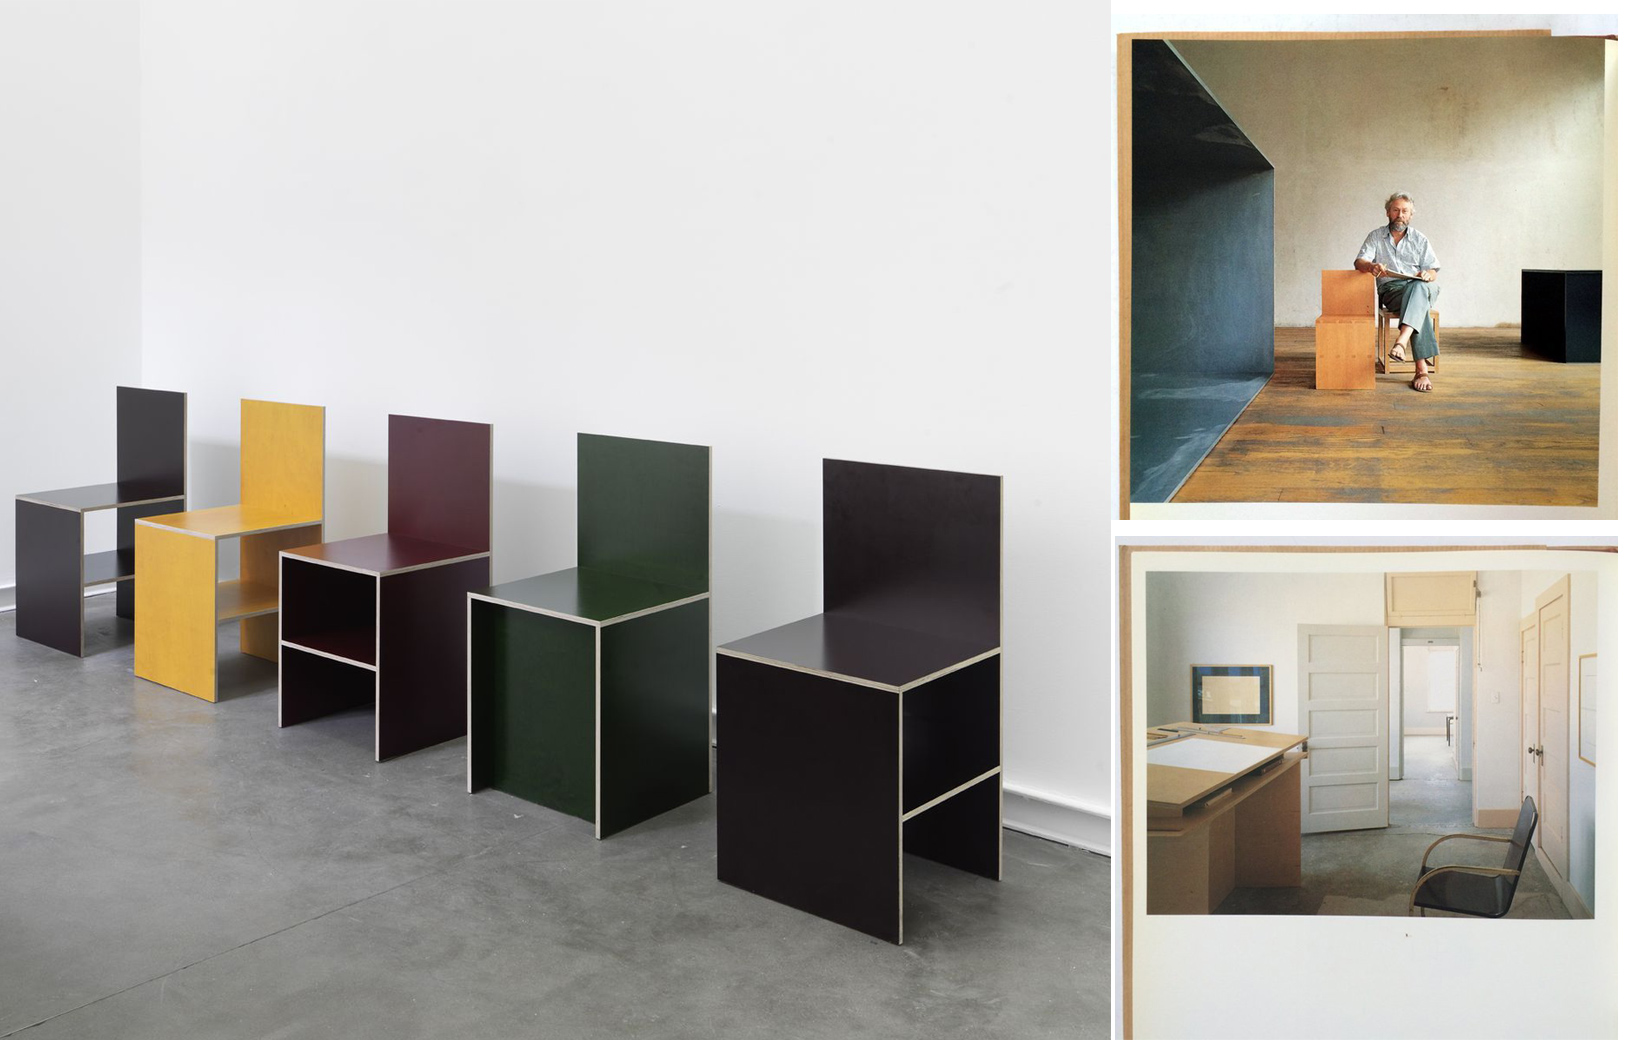 My Chameleon / Interiors. Curated by Chloe McCarthy